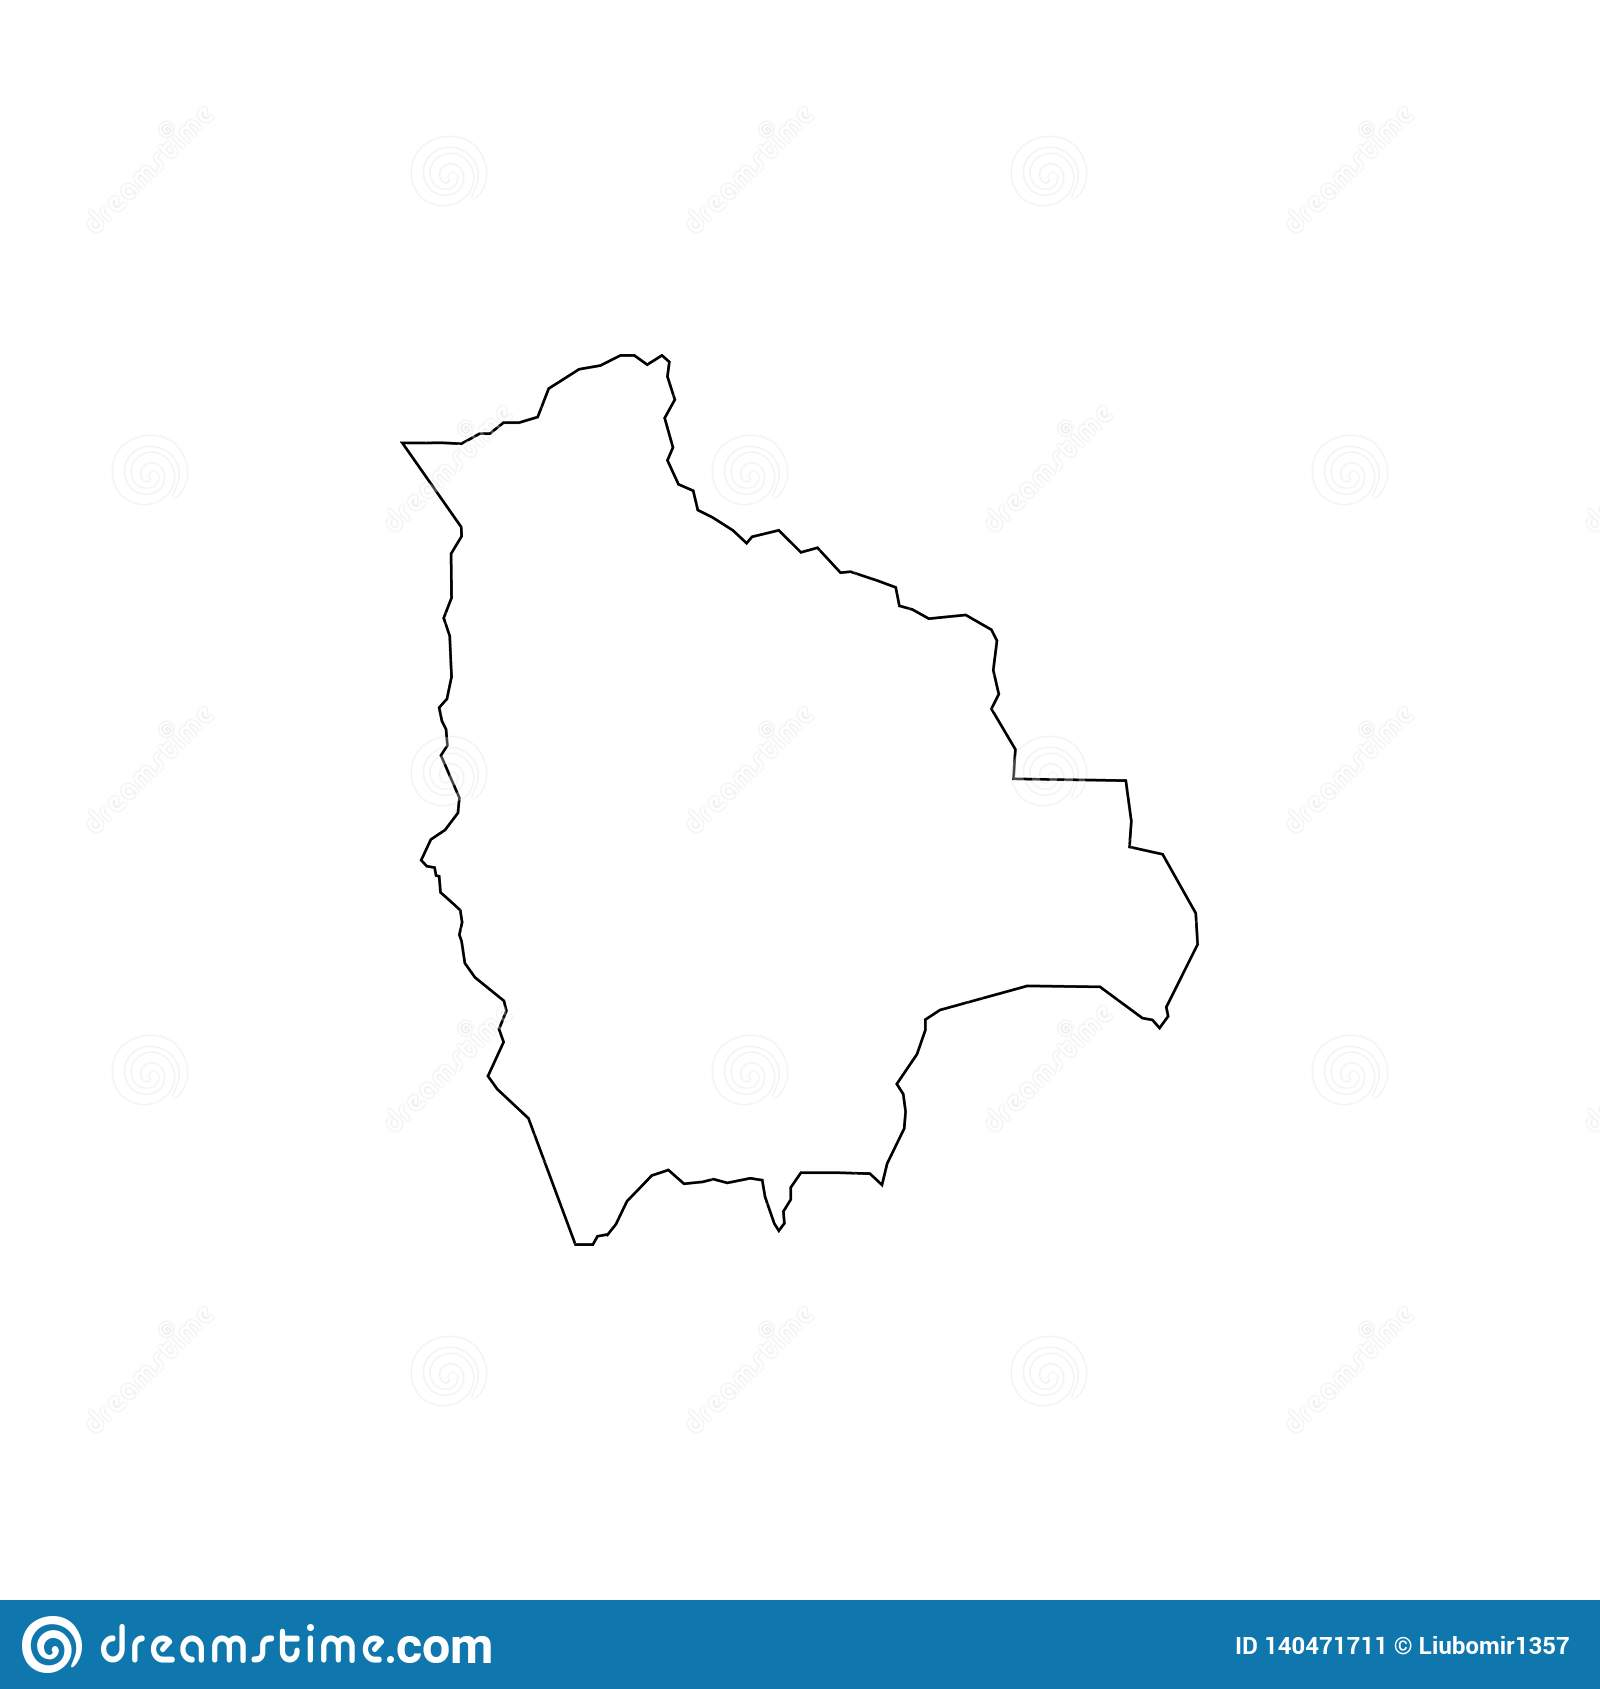 Picture of: Outline Vector Map Of Bolivia Simple Bolivia Border Map Vector Silhouette On White Background Stock Vector Illustration Of Contour Blank 140471711